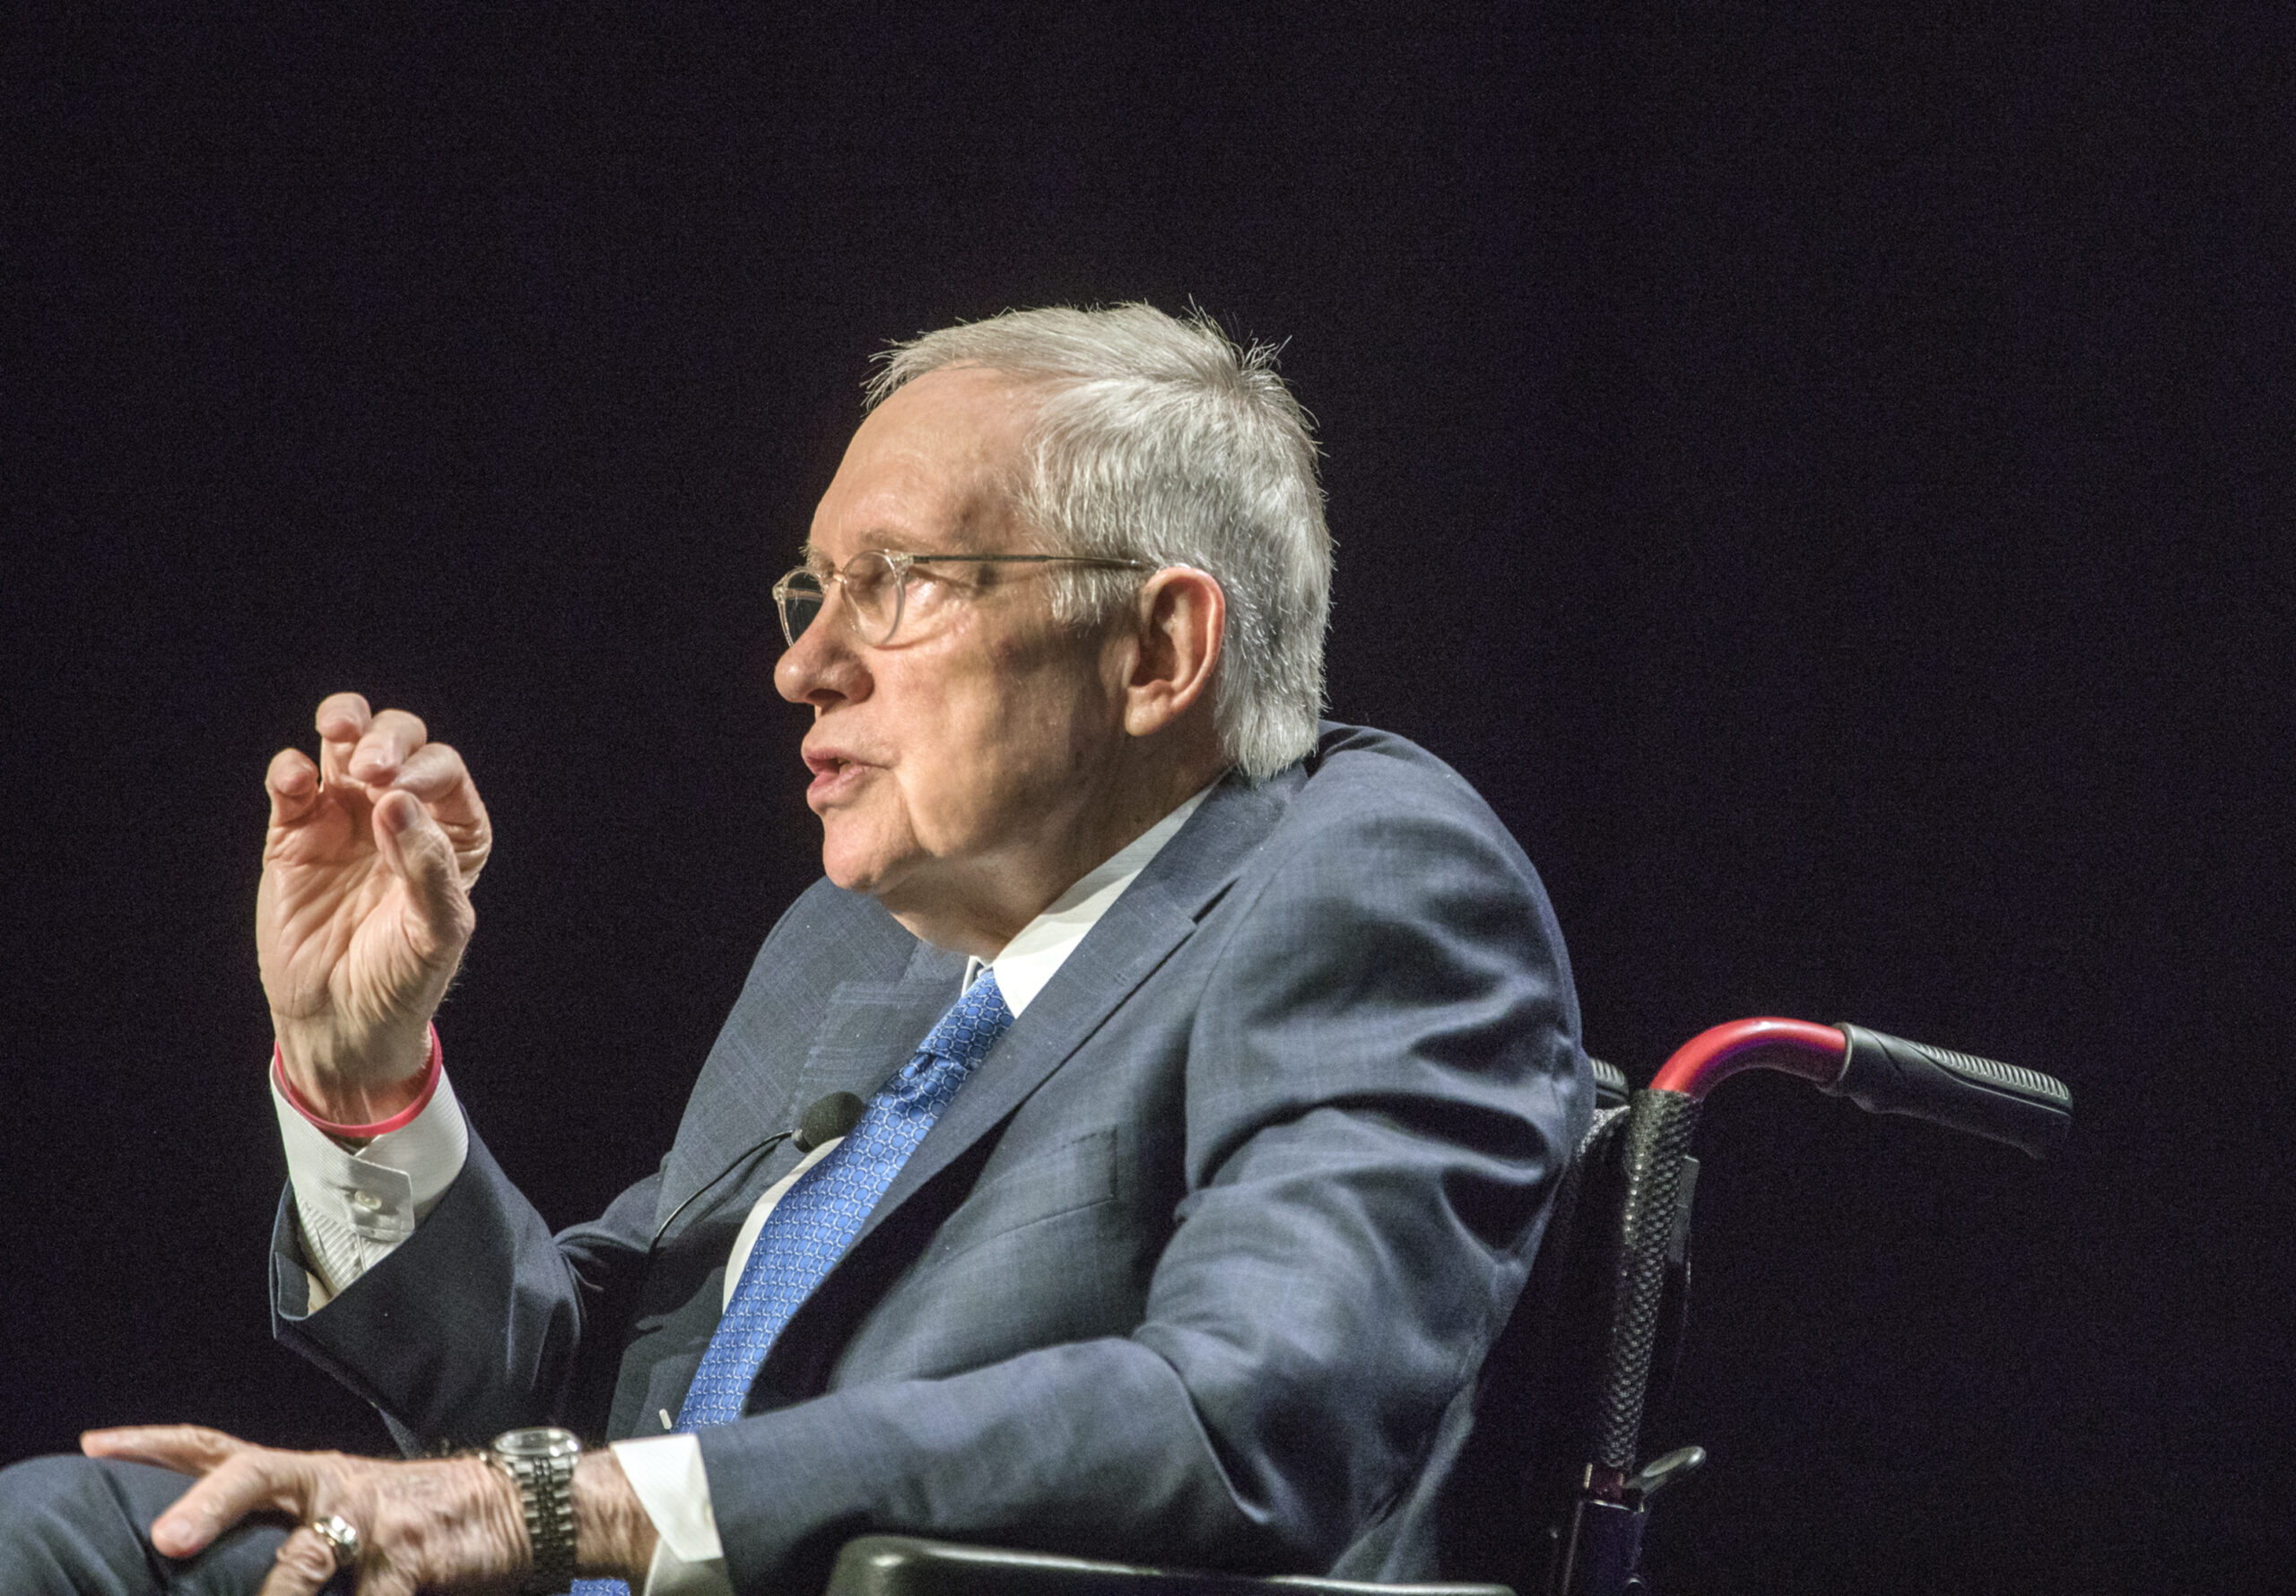 Harry Reid seated wearing a gray sportcoat and blue tie